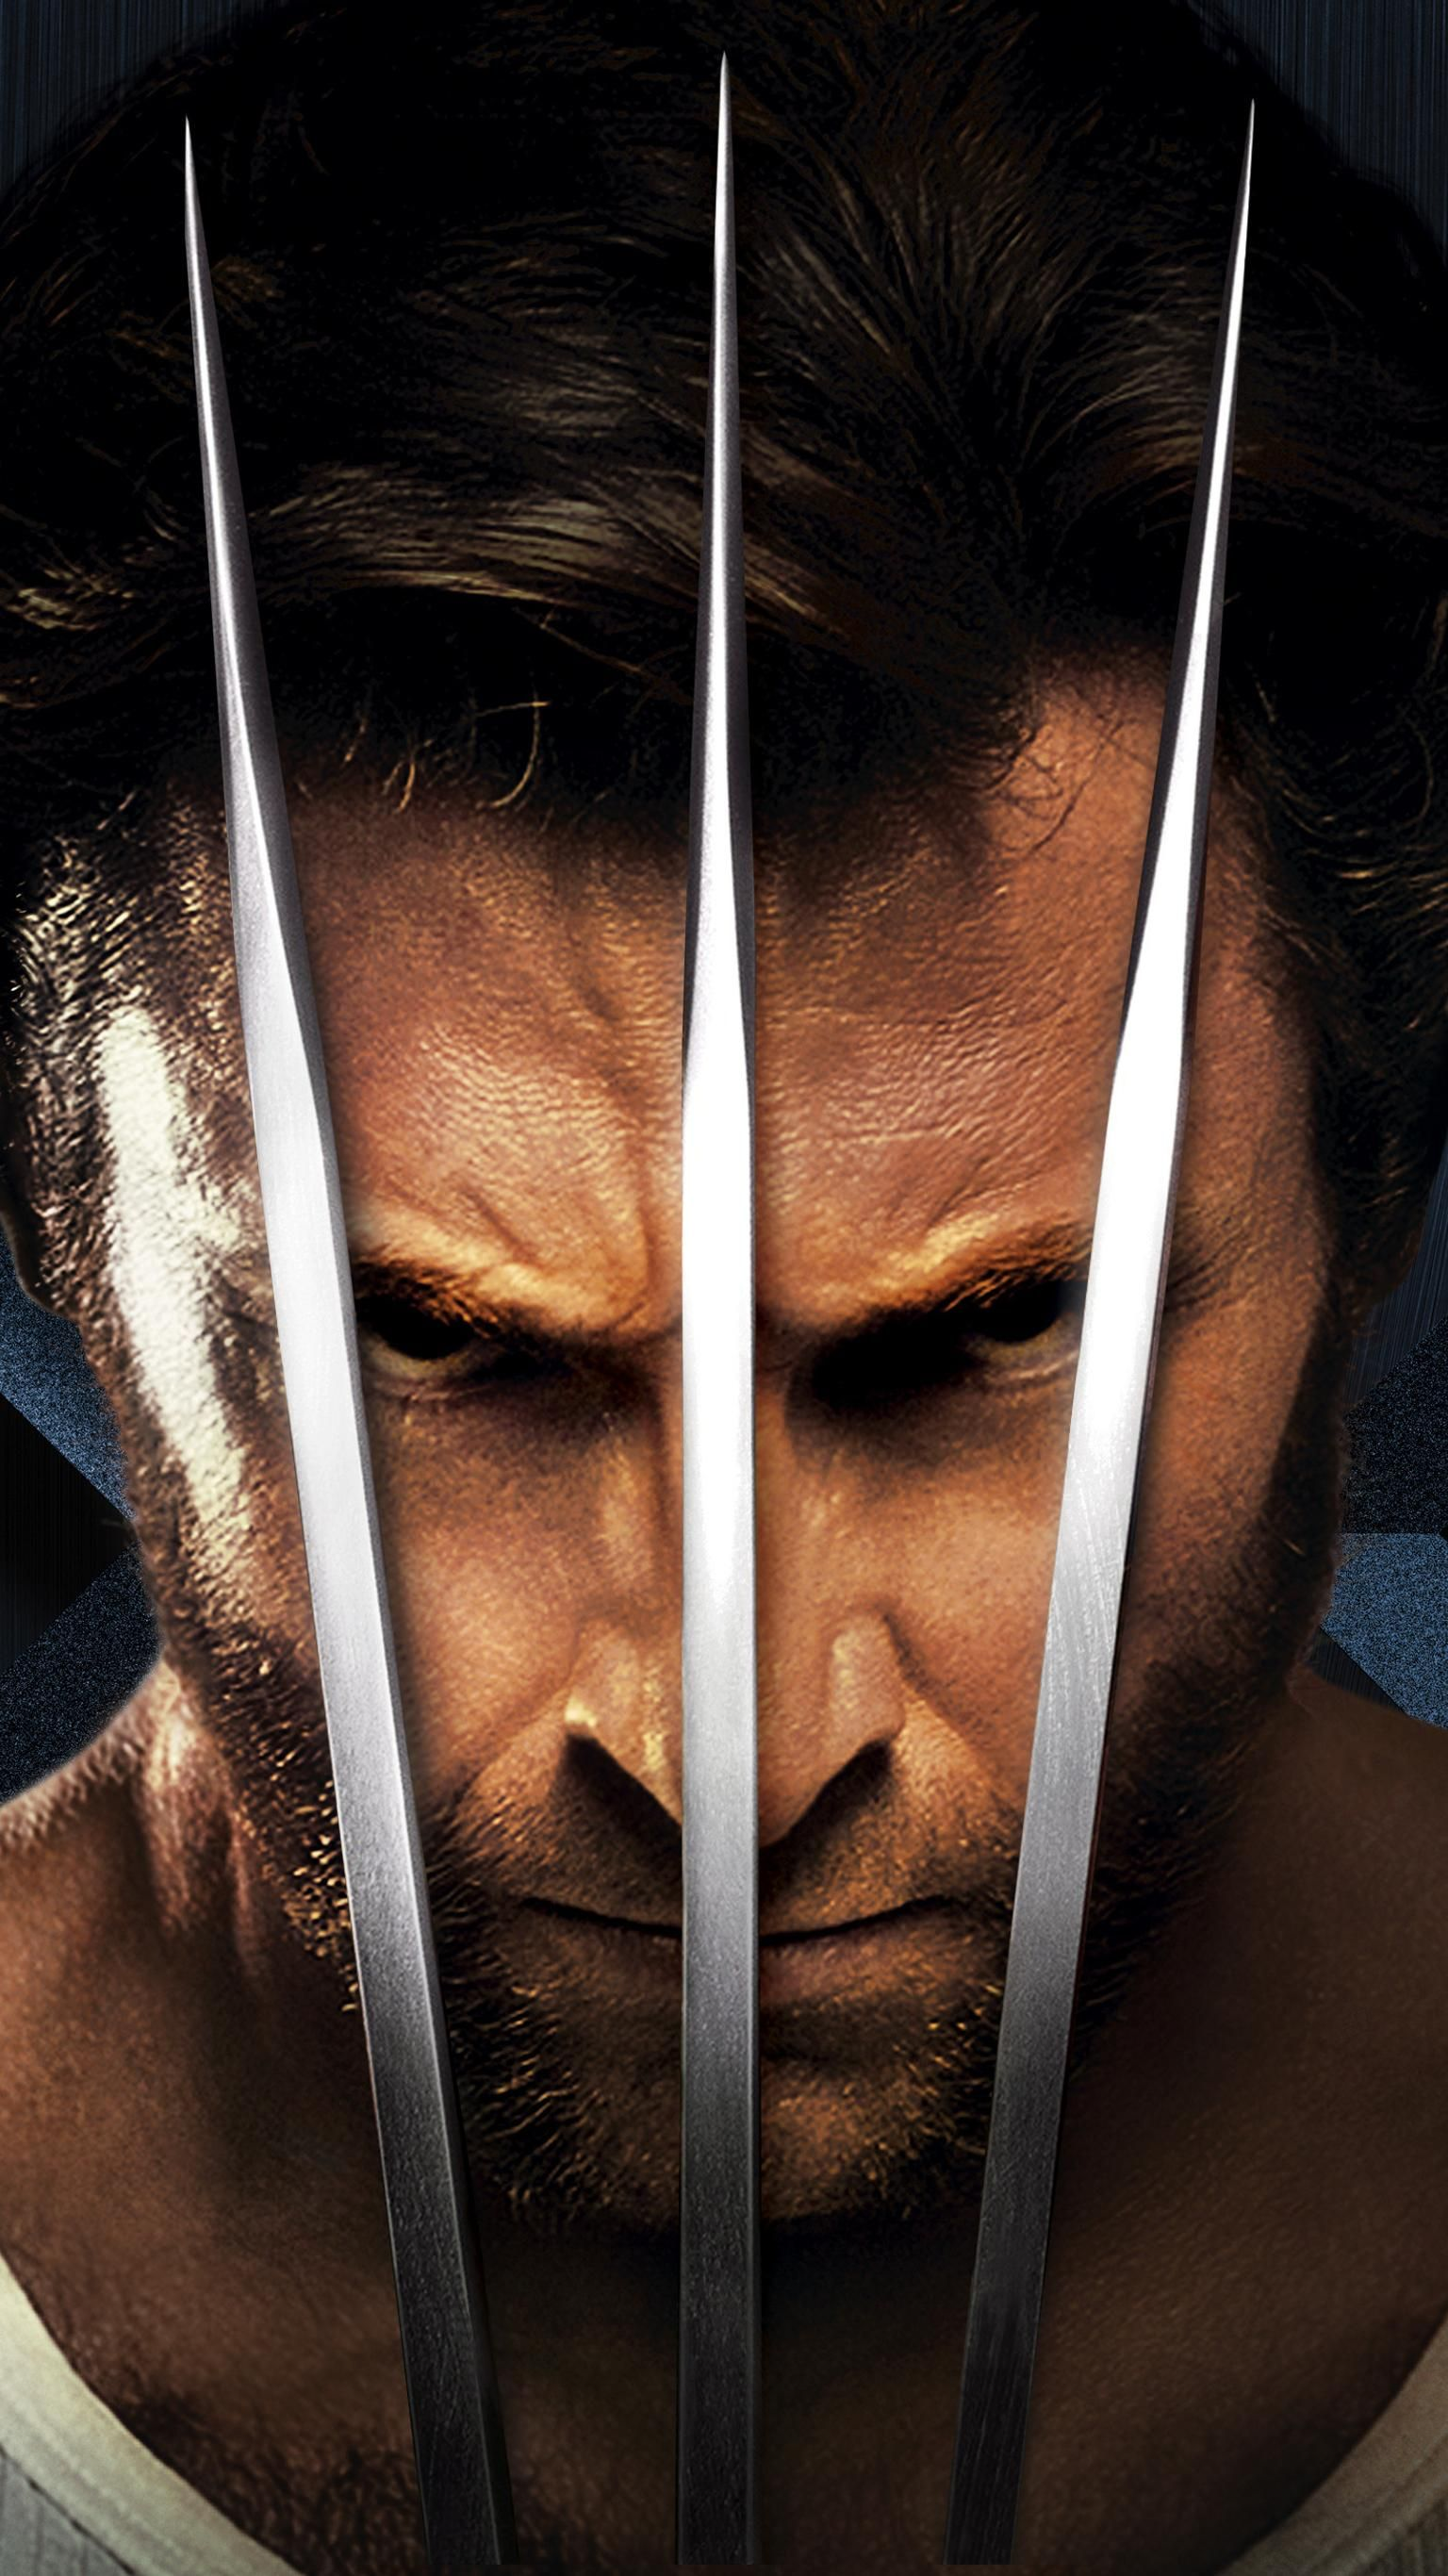 Up For Sale X Men Origins Wolverine For Ps3 A Good Game For Any Marvel Fan Buy It Before Is Gone The Game Come Complete With Book X Men Wolverine Activision